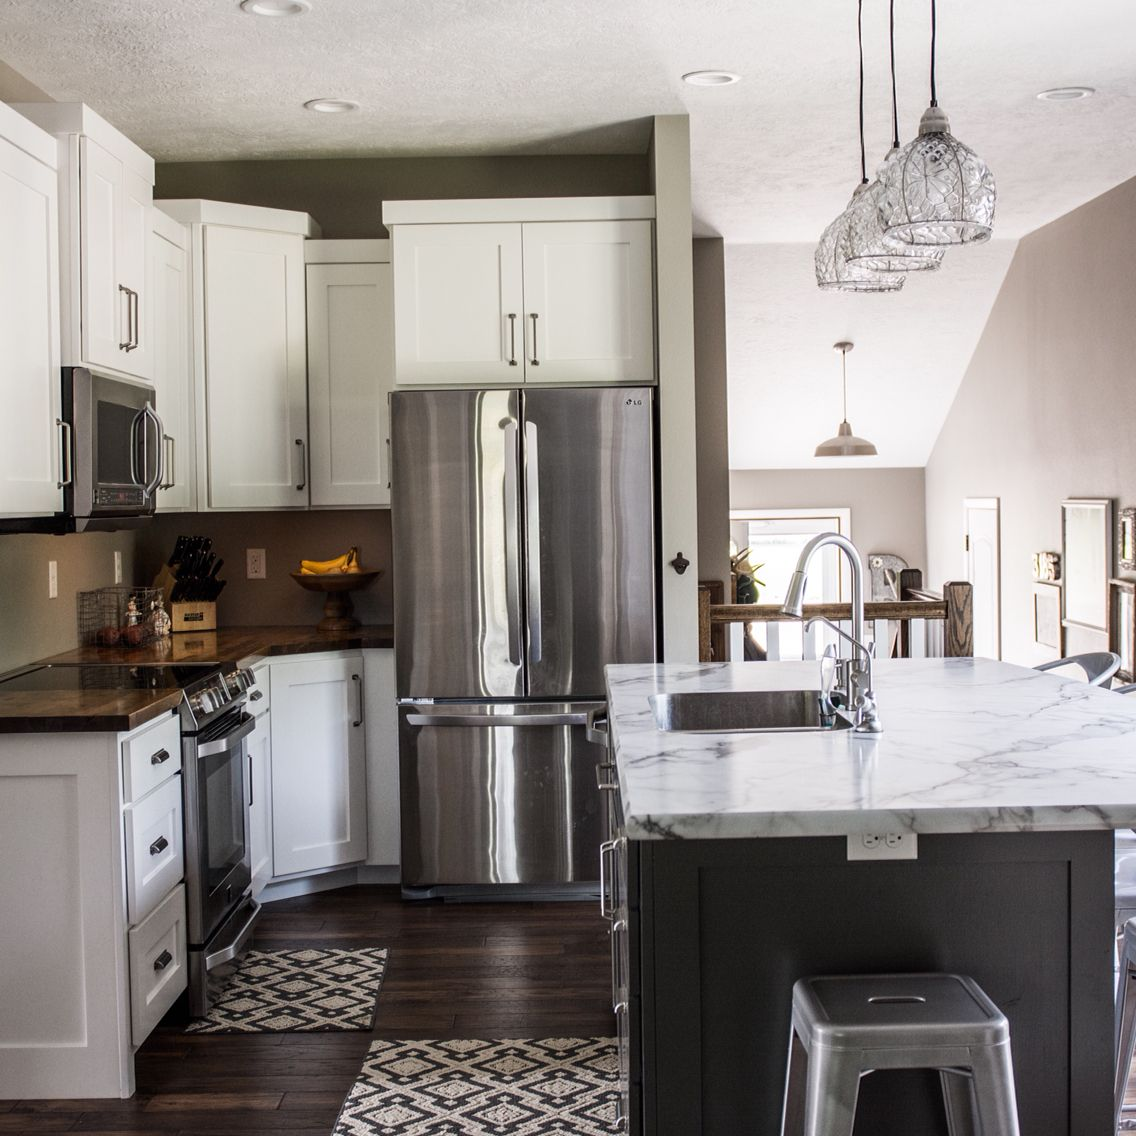 White Kitchen Cabinets With Butcher Block Countertops: White Kitchen Cabinets, Kendall Charcoal BM Painted Island